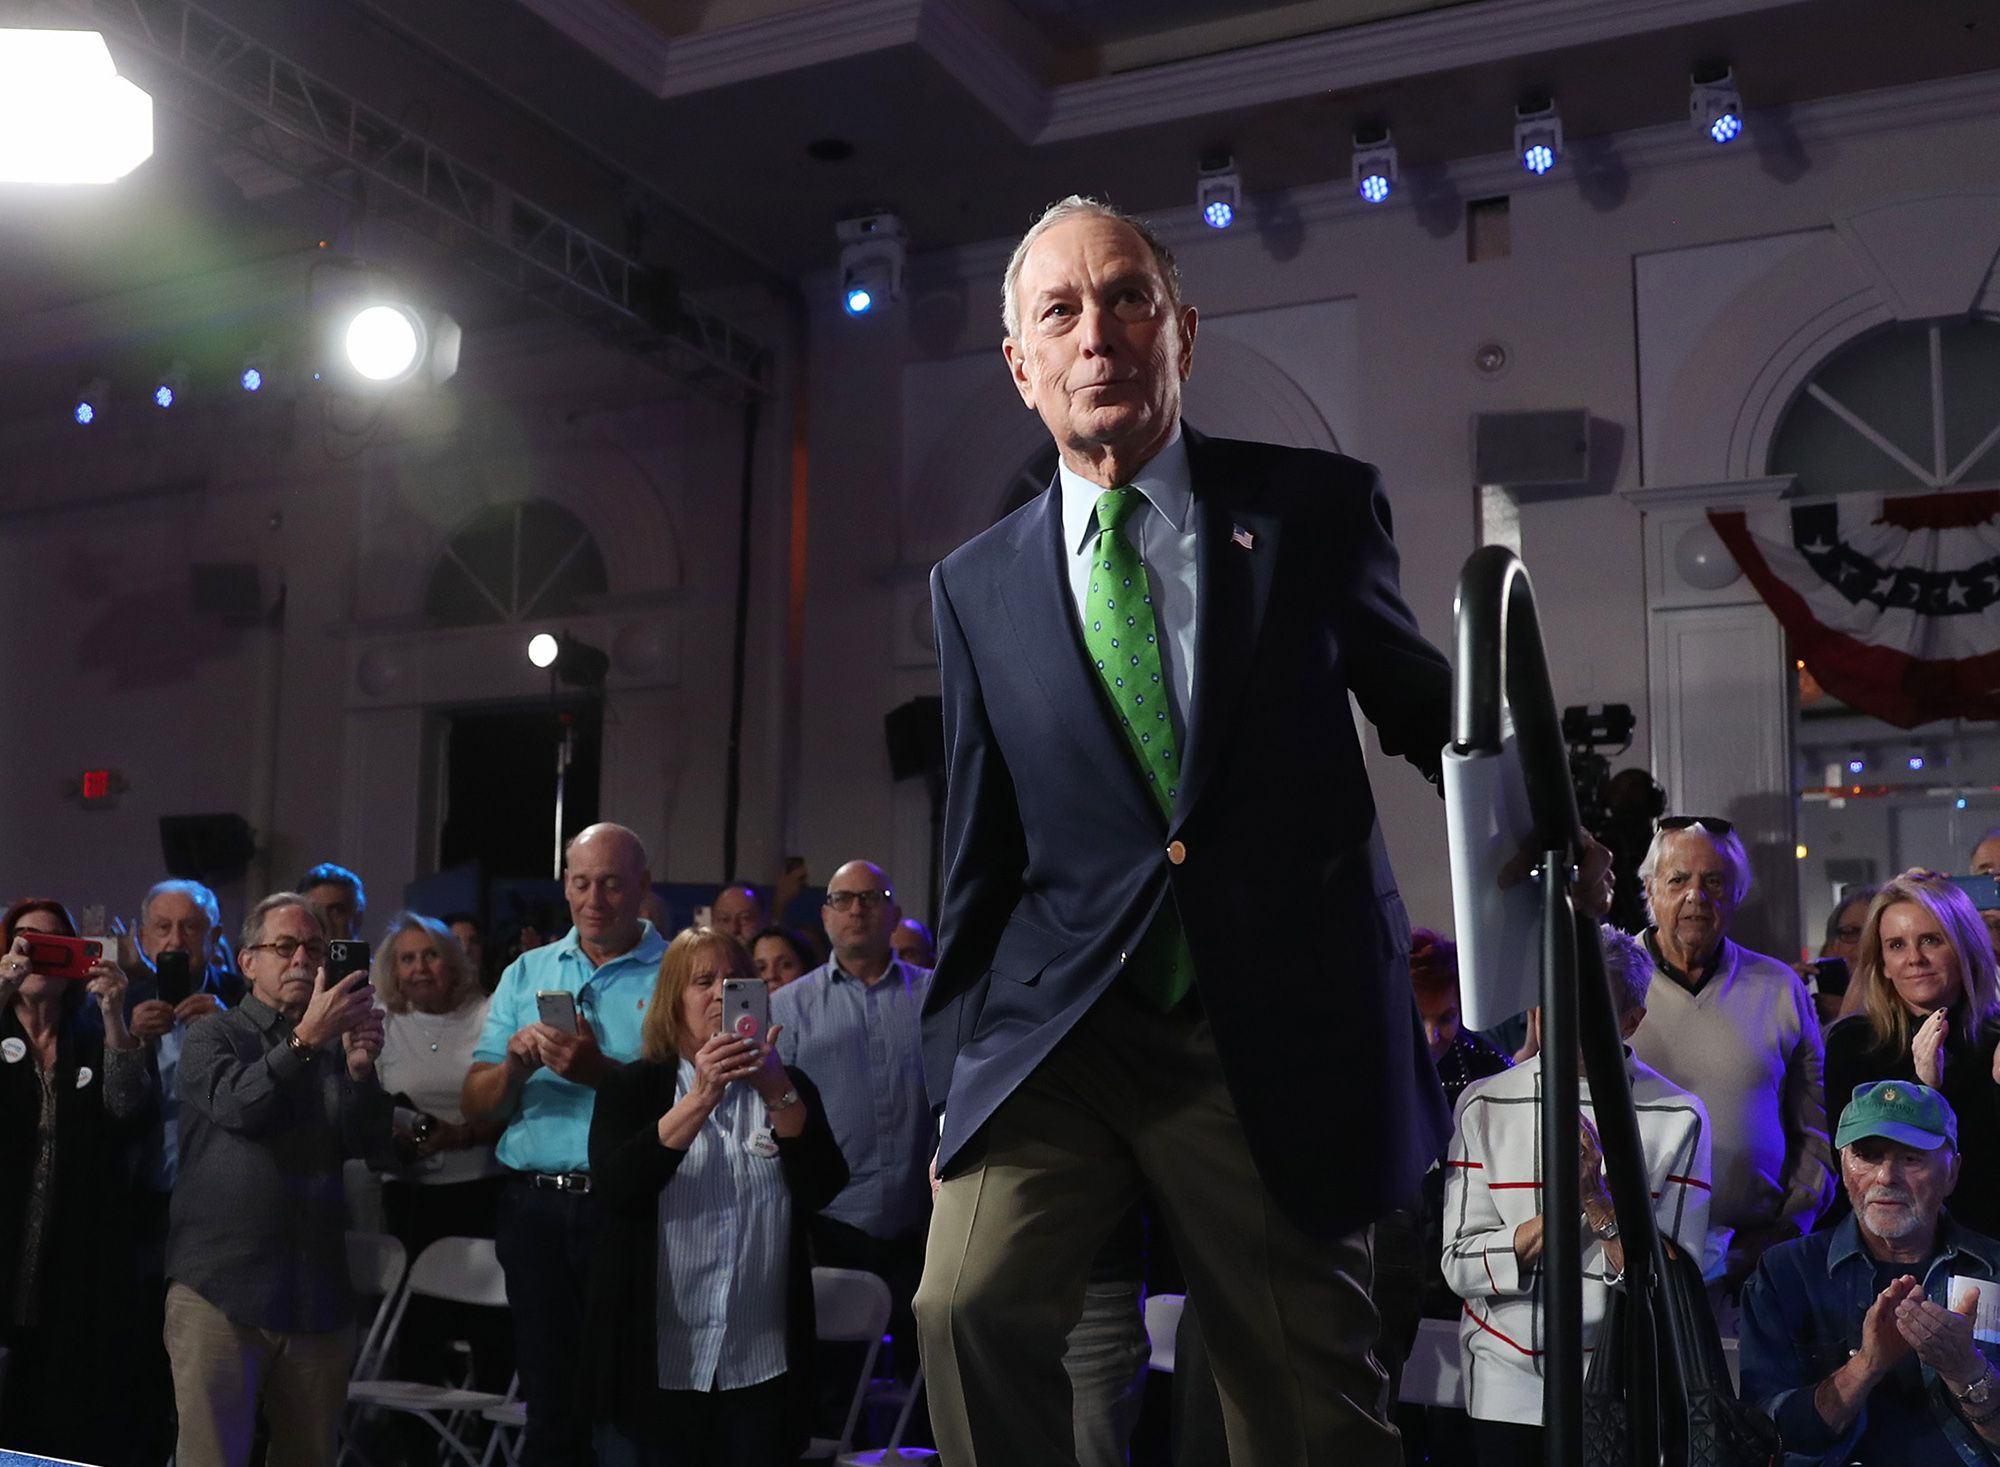 Democratic Debate Rule Change Could Open Stage to Bloomberg